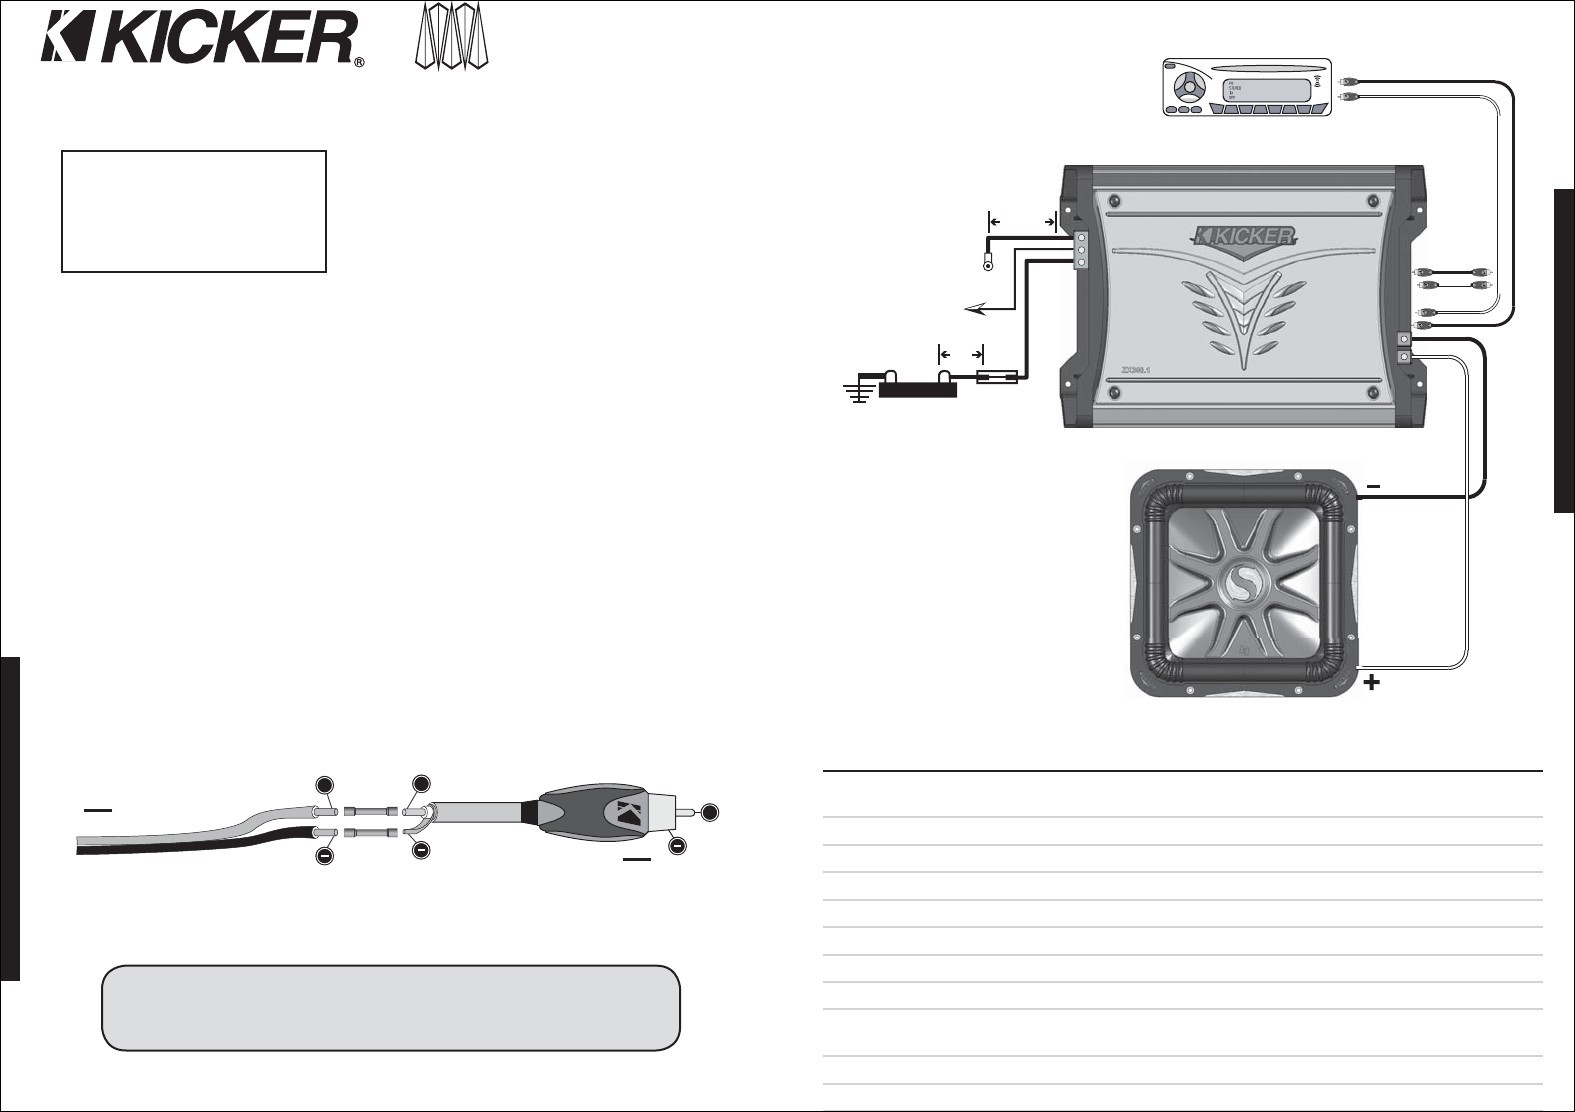 Kicker Solo Baric L7 Wire Diagram